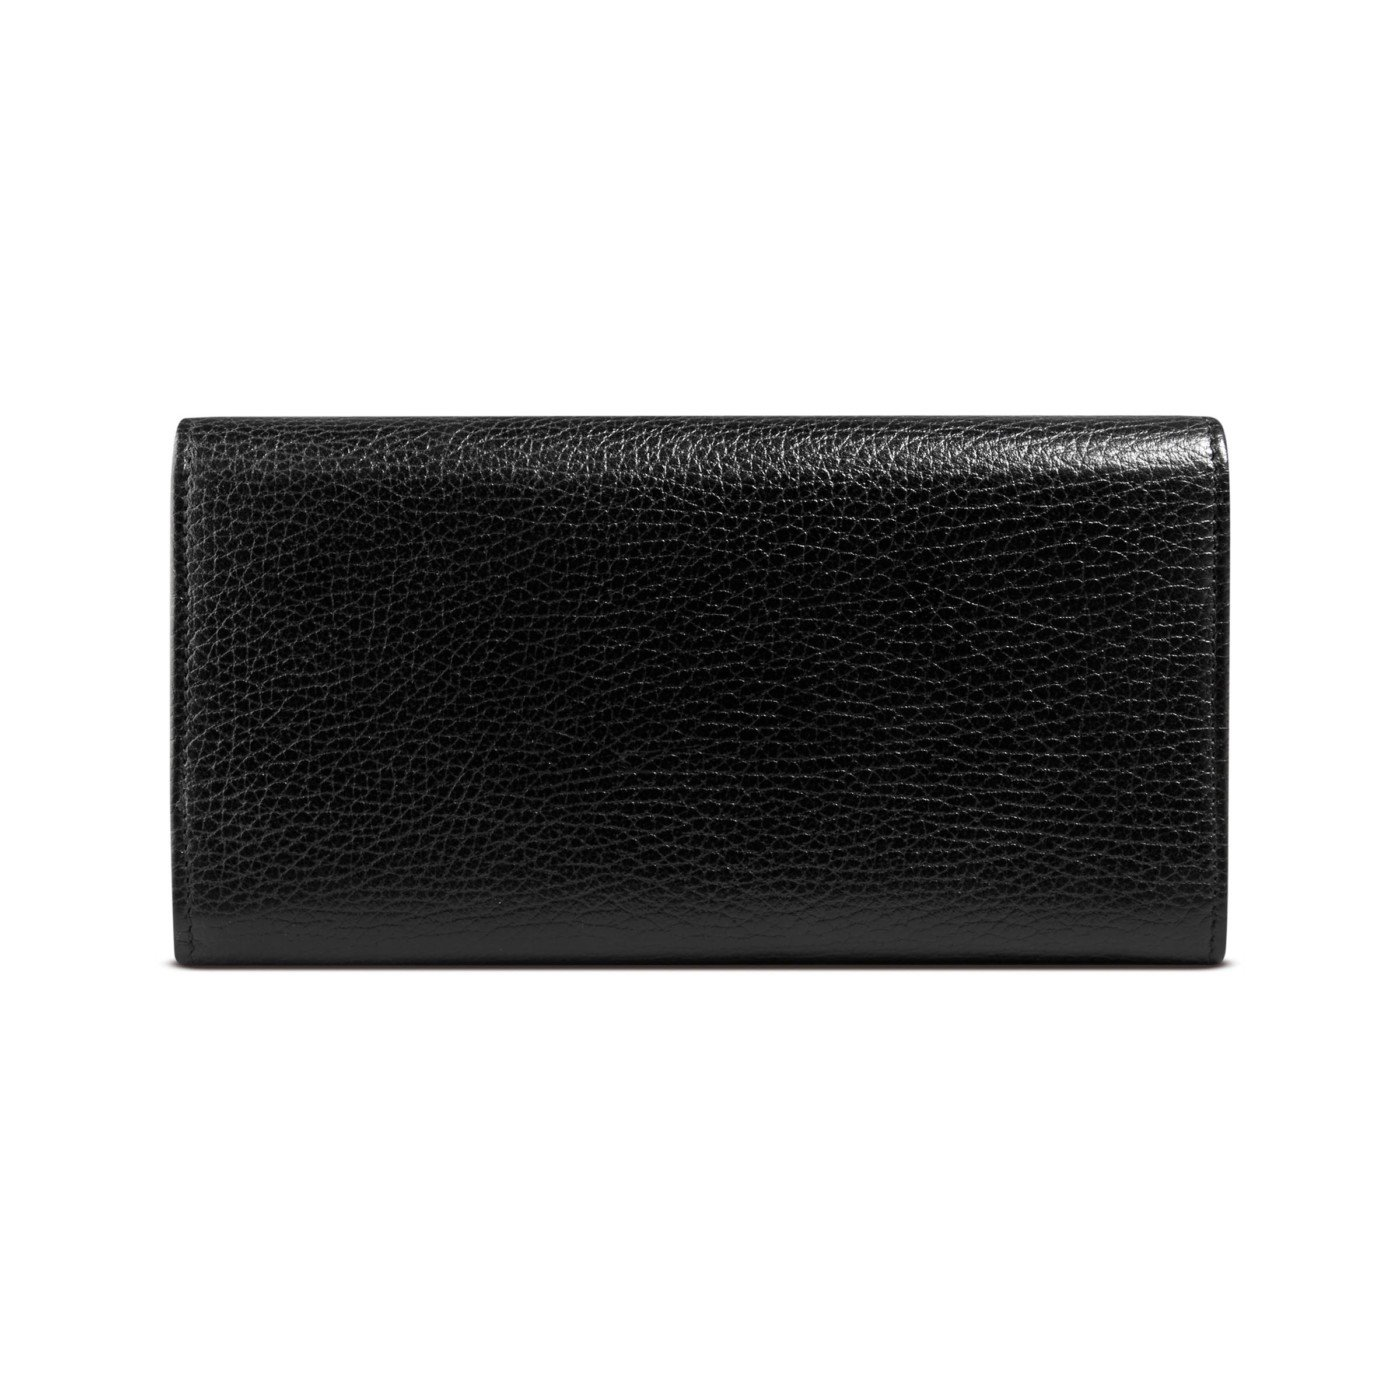 c6d589d5384 Amazon.com  Gucci Women s Black Swing Leather Snap Closure Continental  Wallet  Shoes